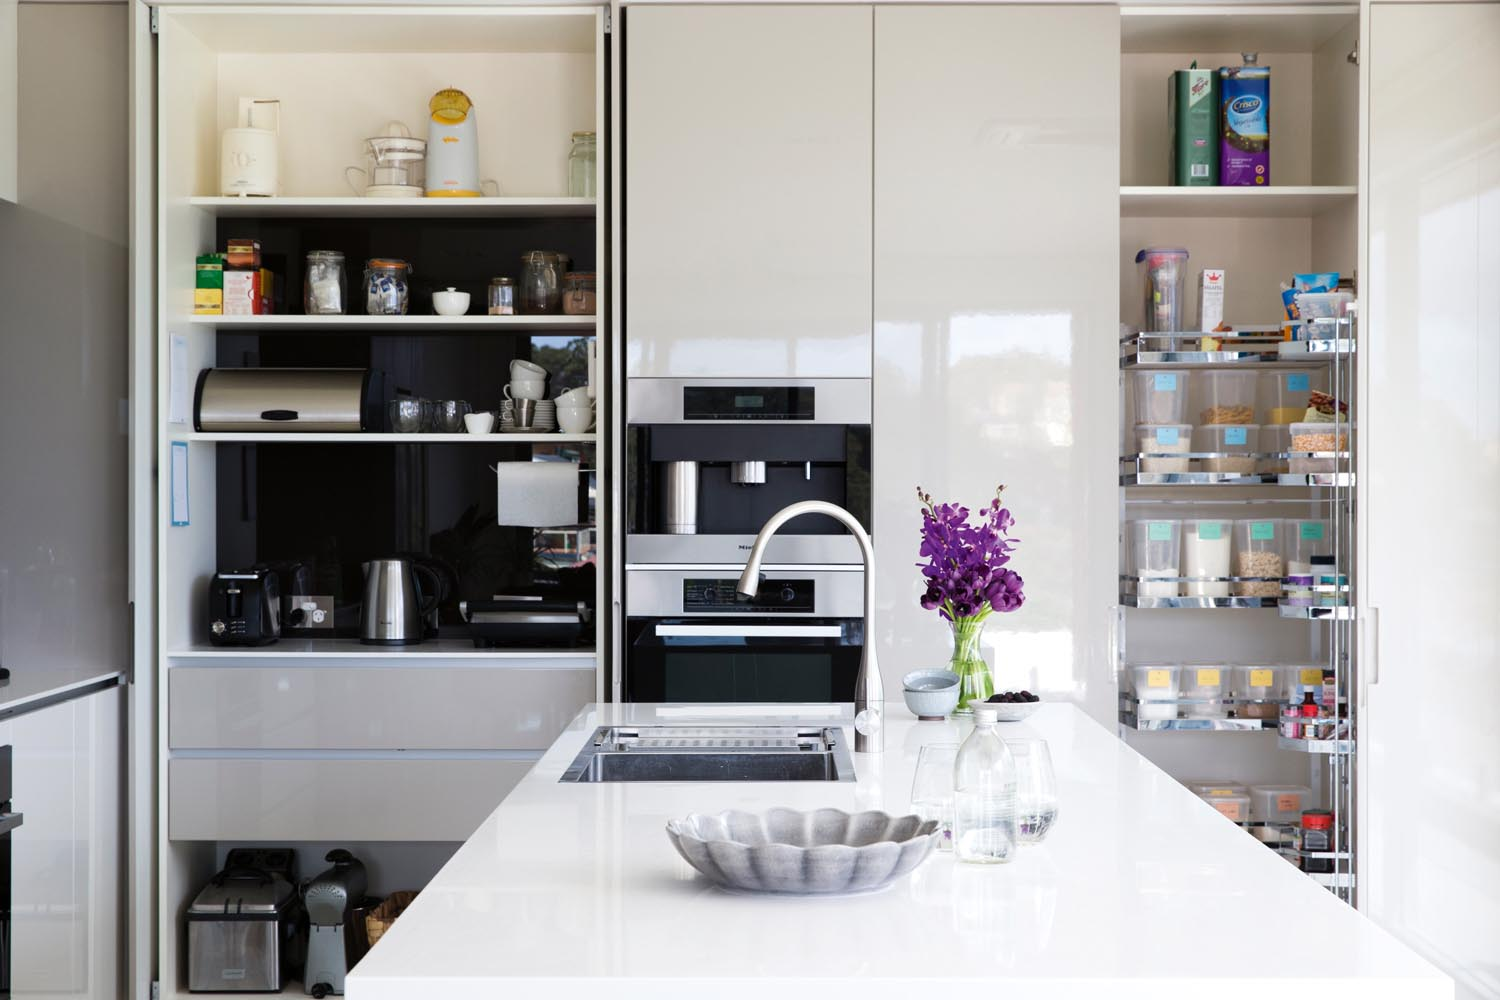 A white modern kitchen with a tap and flowers